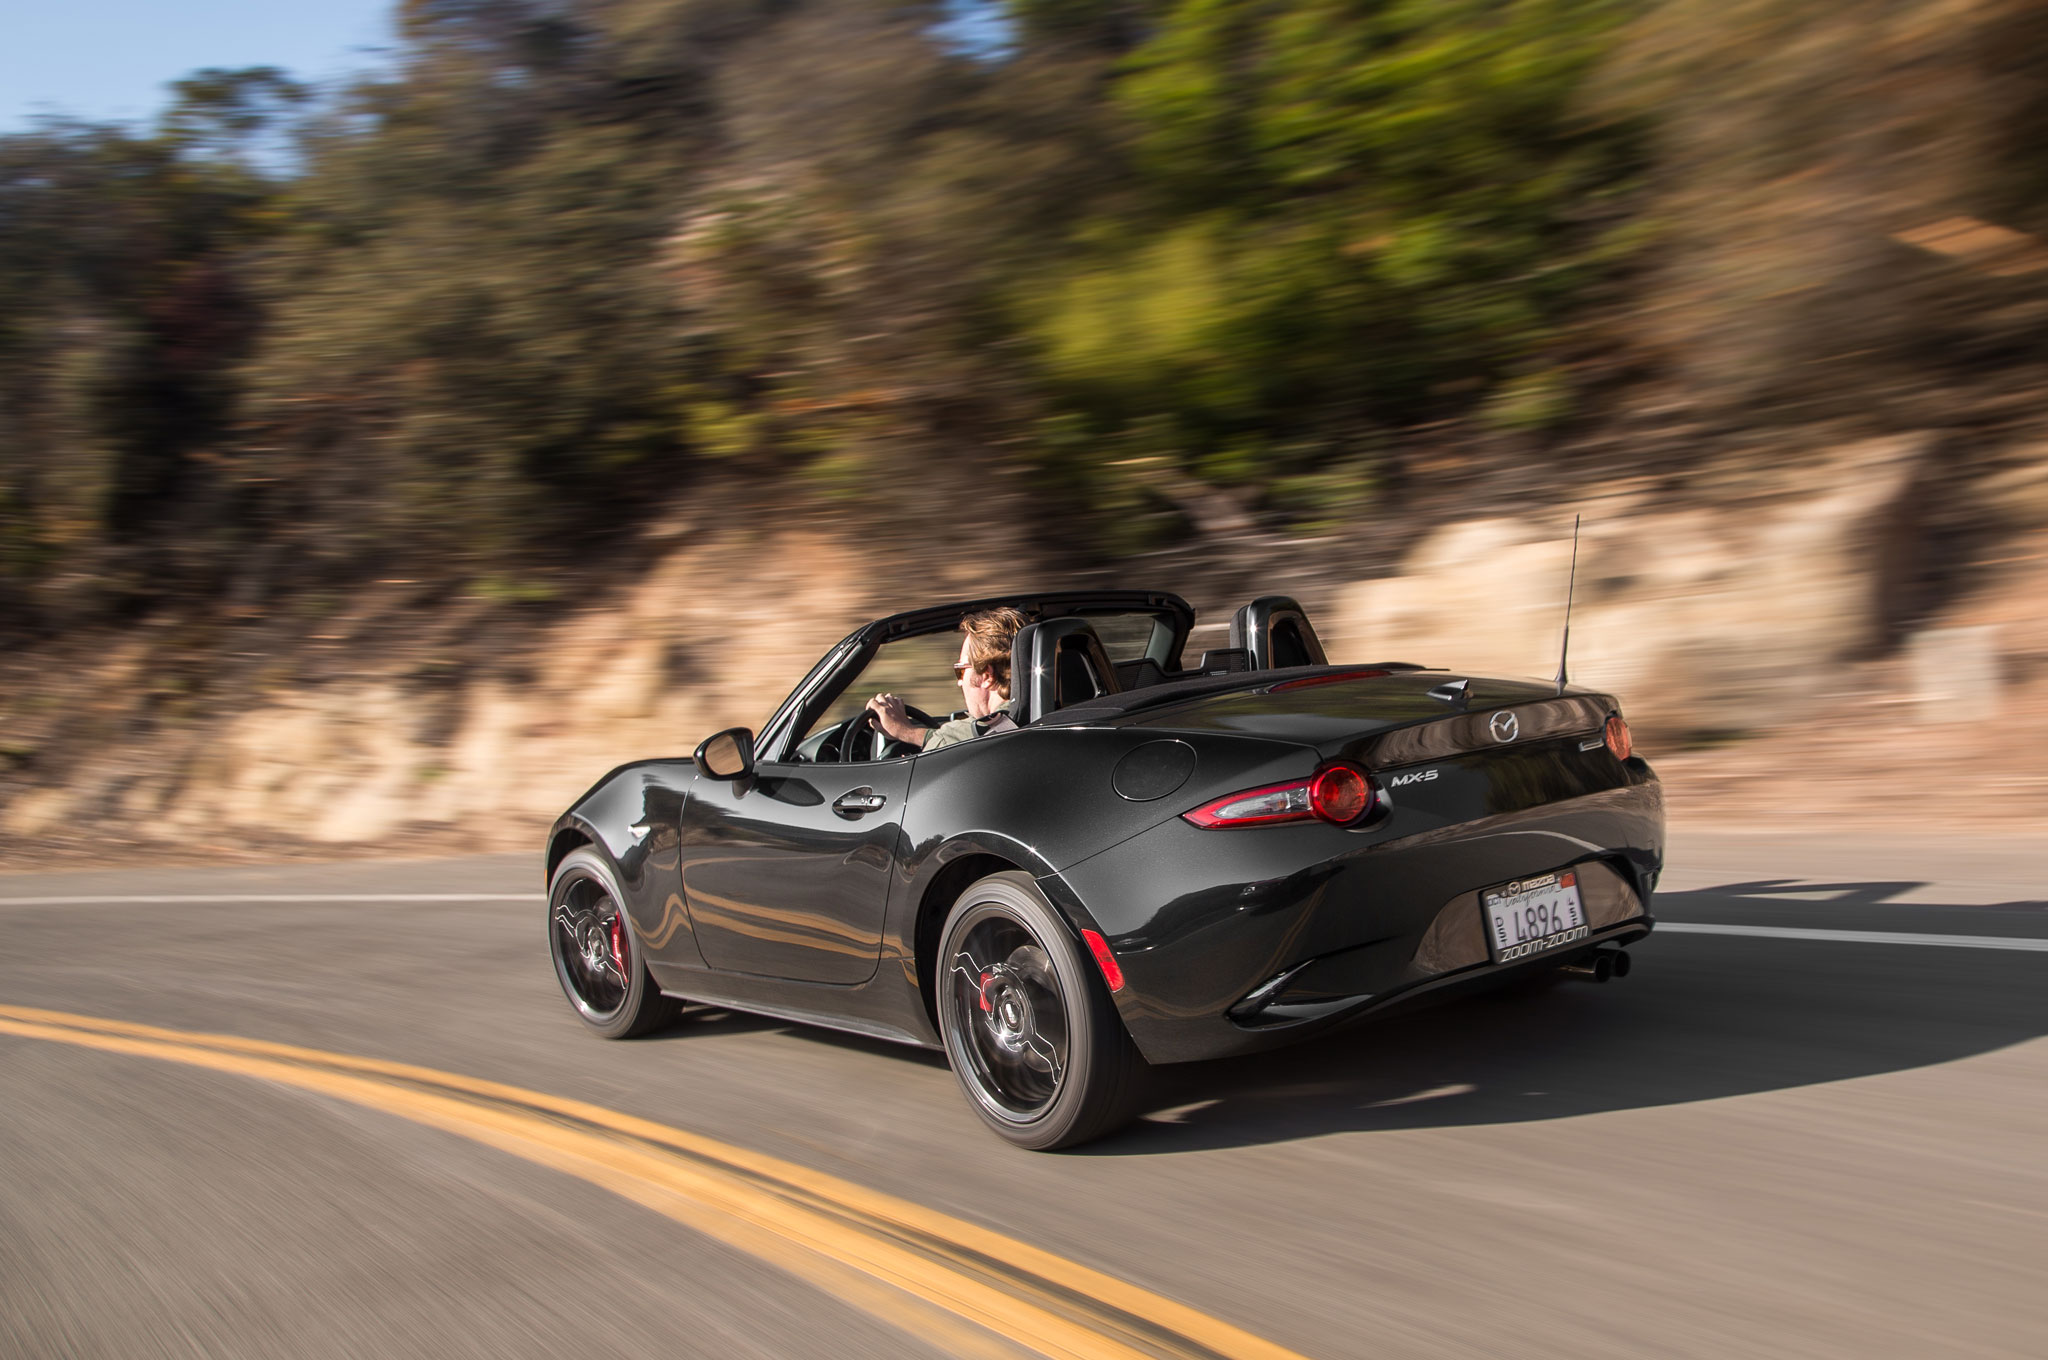 http://st.automobilemag.com/uploads/sites/11/2015/06/2016-Mazda-MX-5-Miata-Club-rear-three-quarter-in-motion-02.jpg